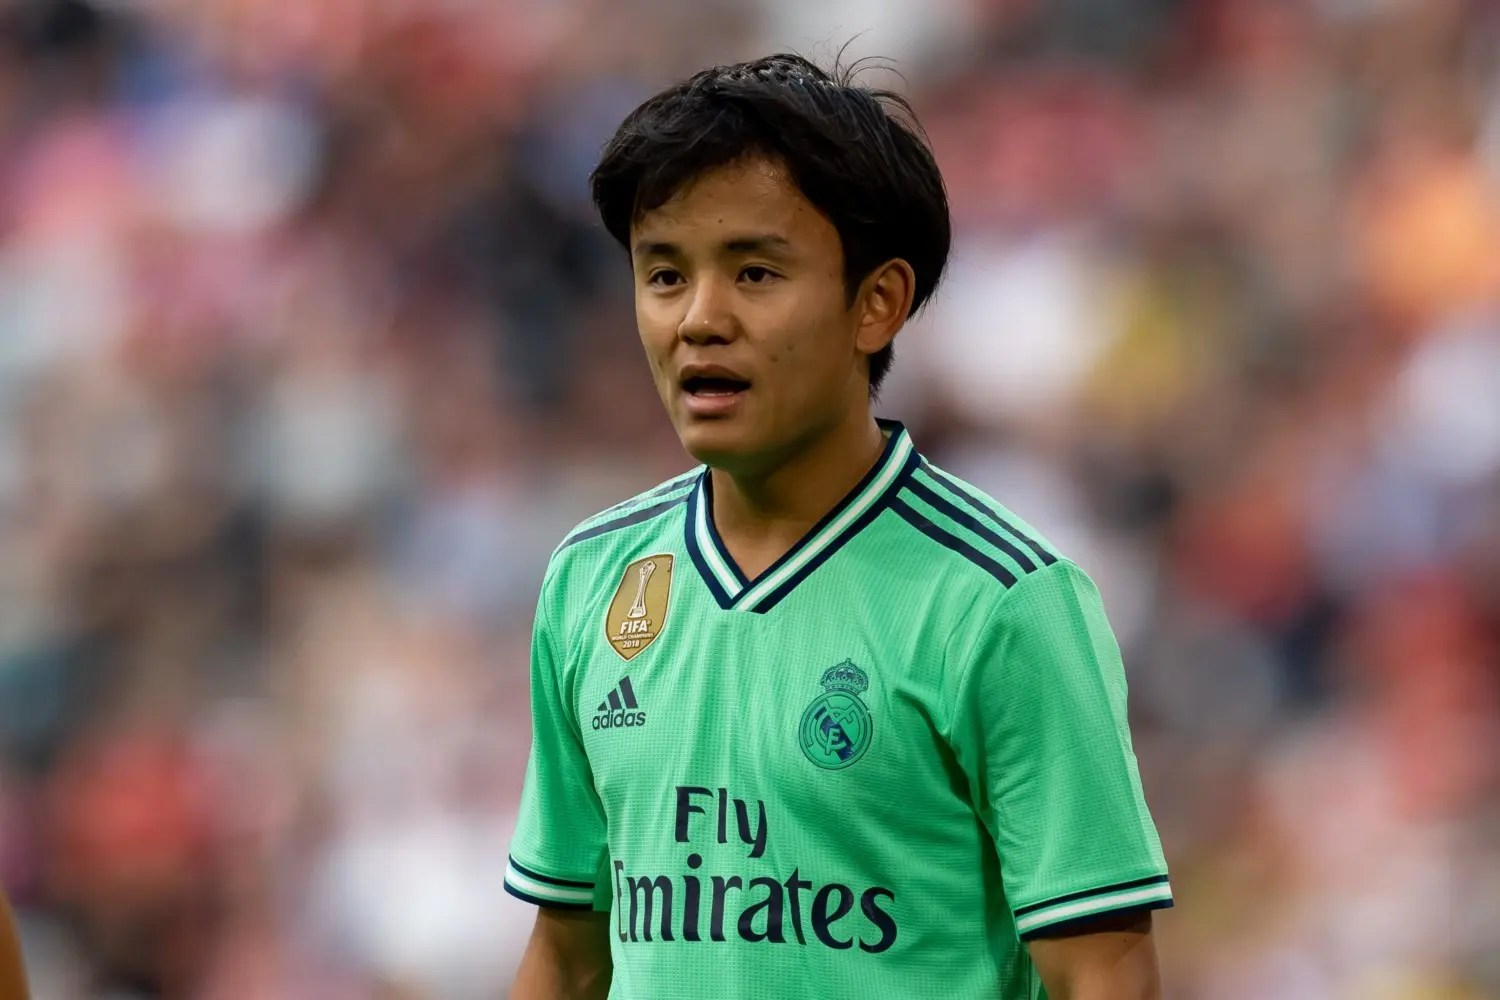 Real Madrid loan wonderkid Takefusa Kubo to La Liga rivals Mallorca